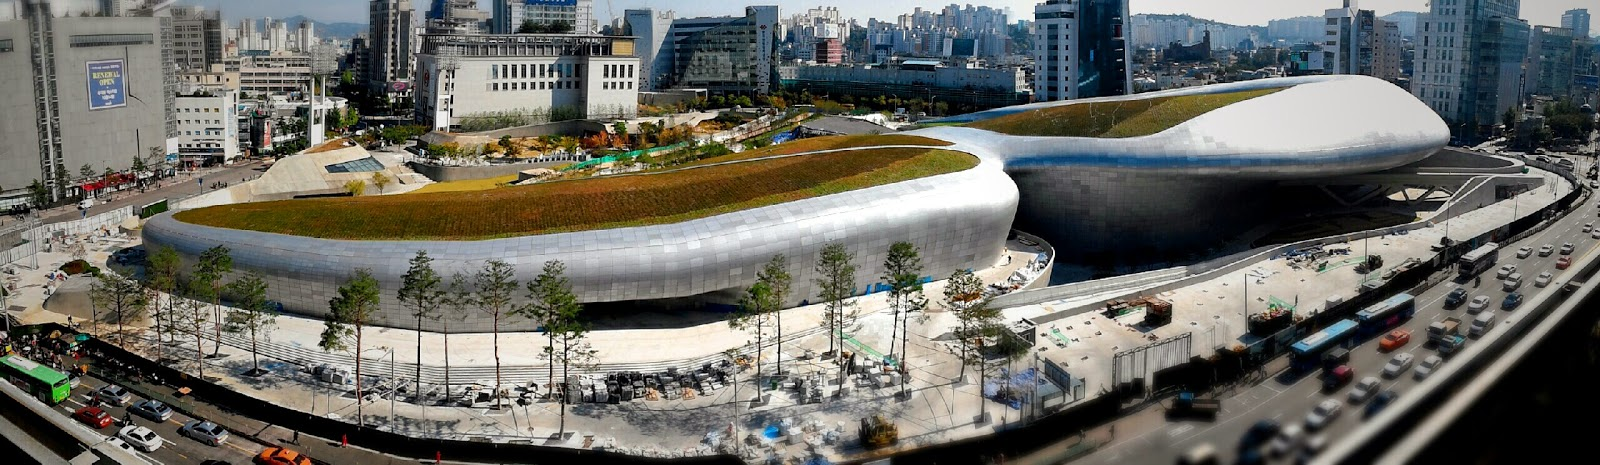 Bird's eye view of the  Dongdaemun Design plaza